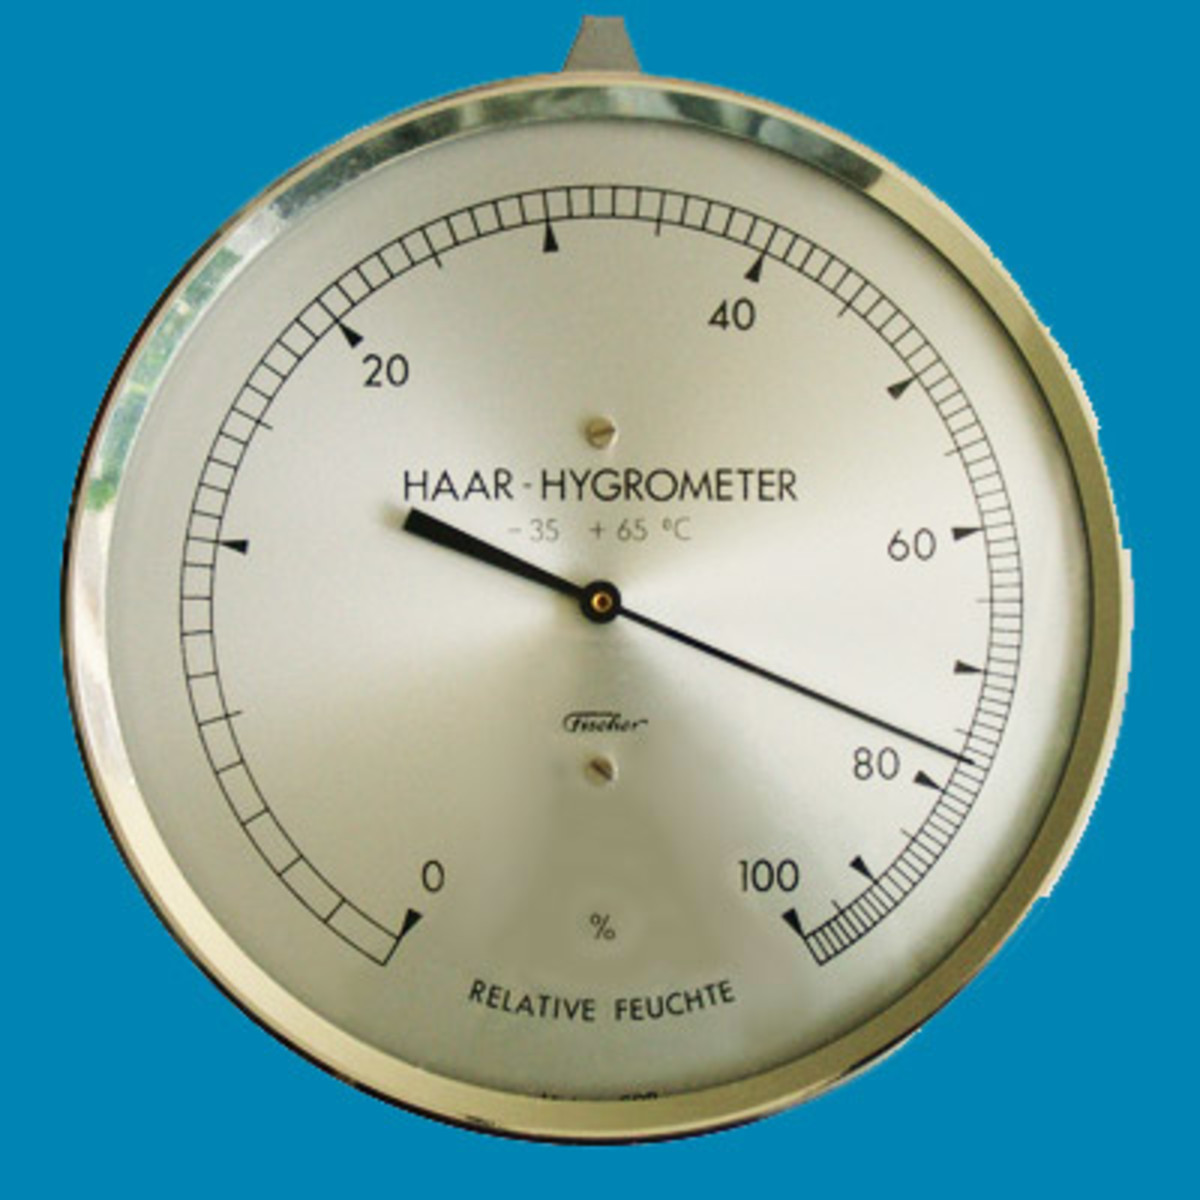 Simple brass wall hygrometer measuring 77% humidity.